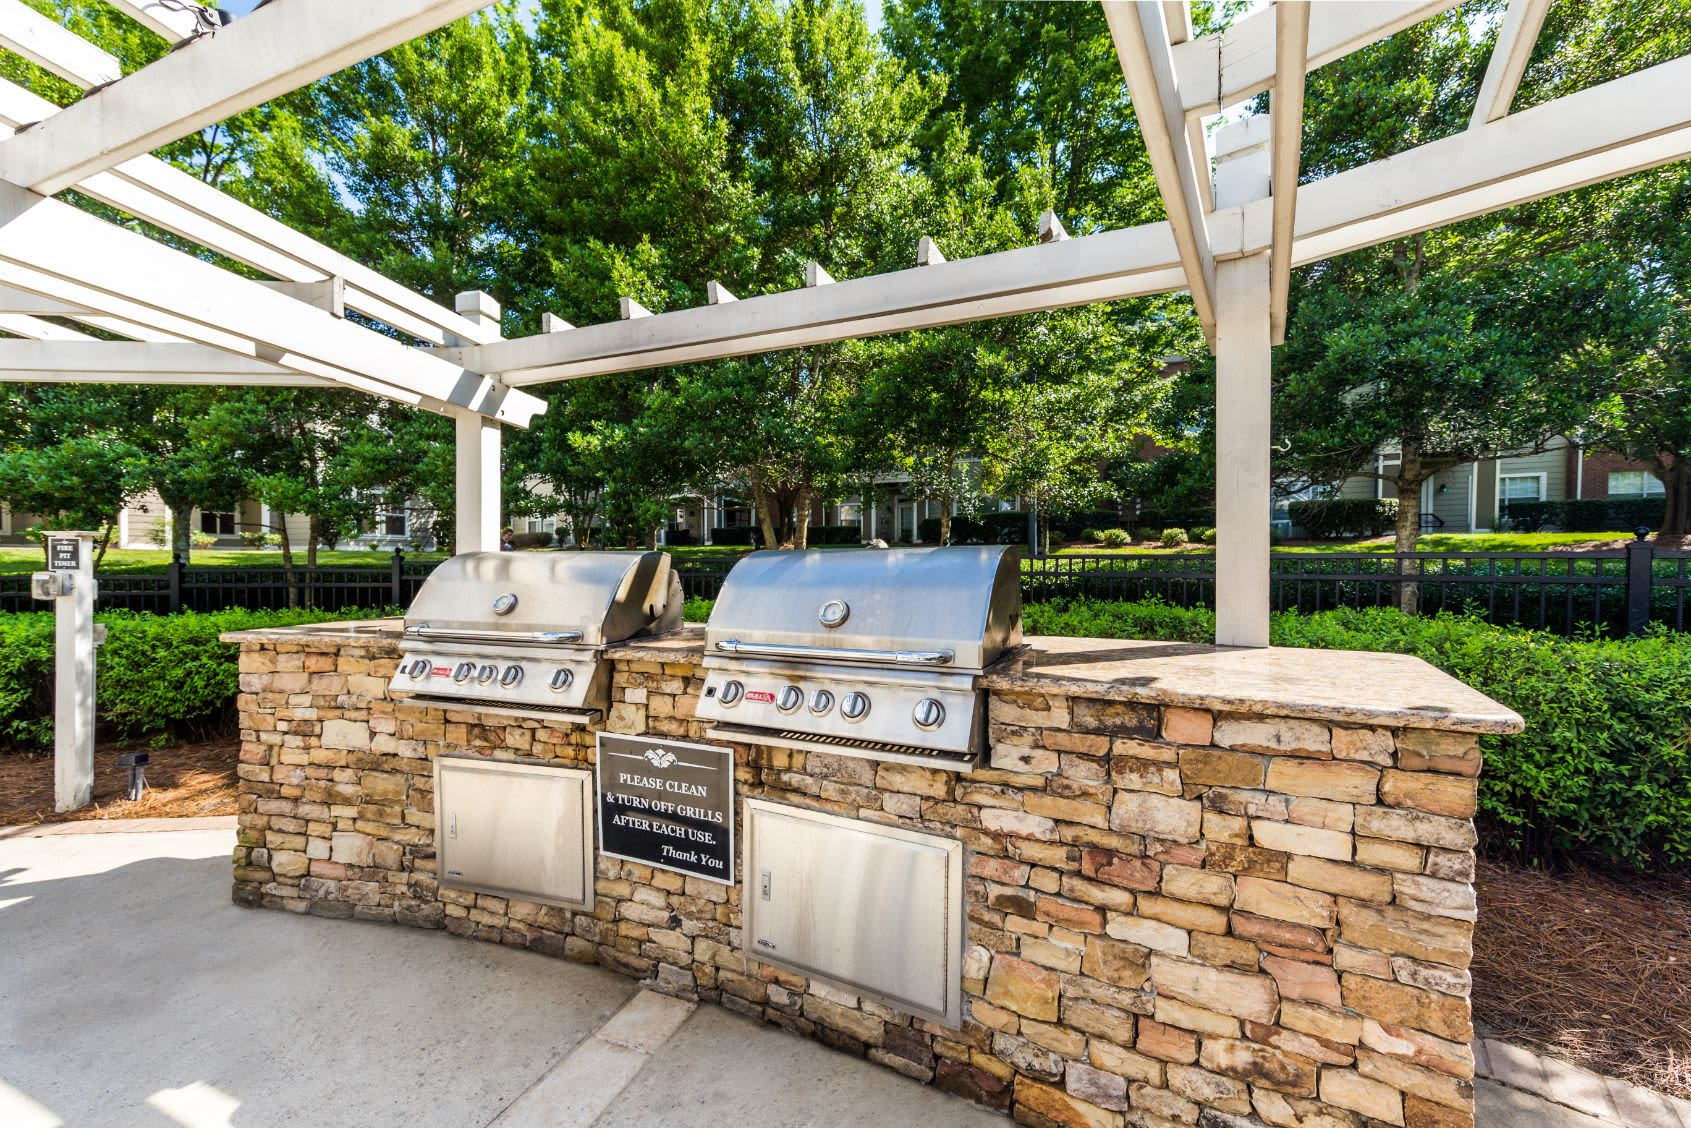 Outdoor grills for residents at The Preserve at Ballantyne Commons in Charlotte, North Carolina